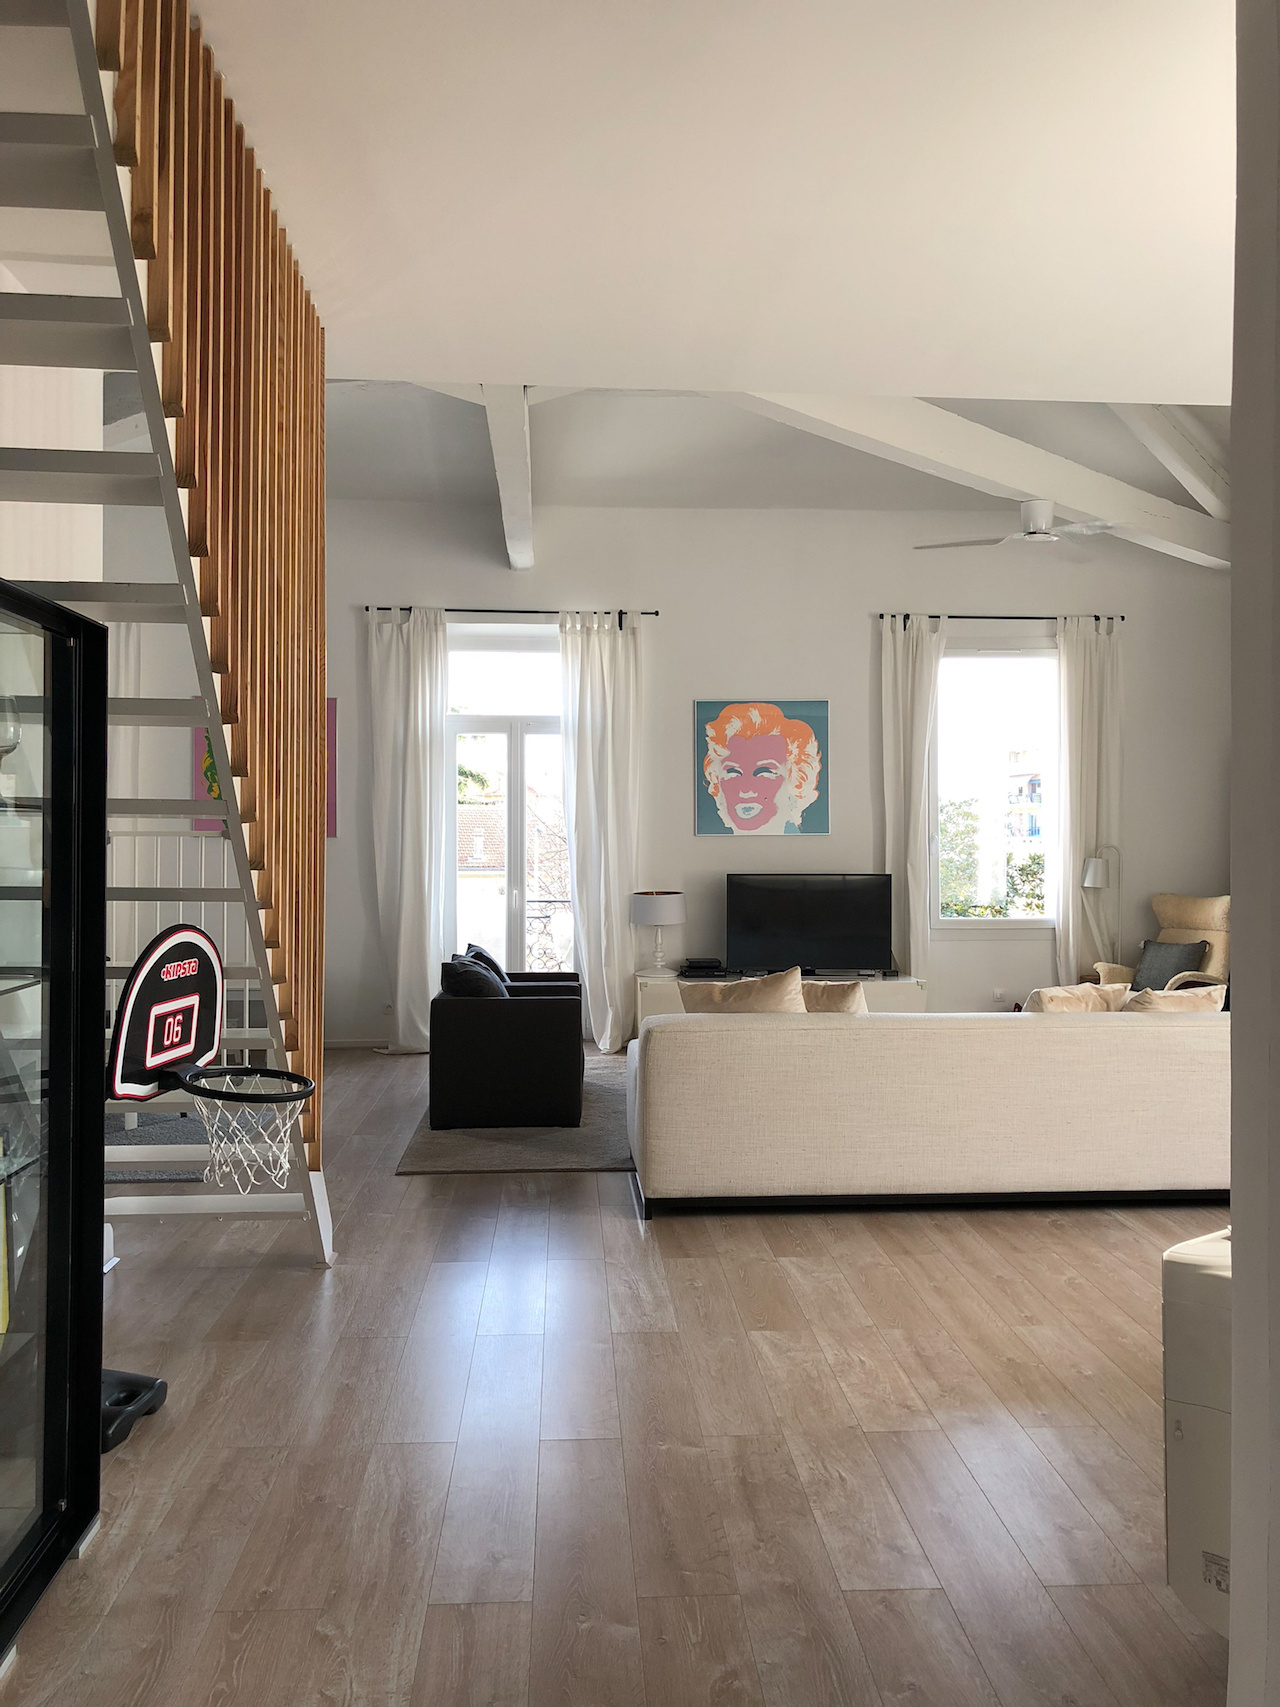 Renovation Cuisine Cannes rentals splendid apartment, fully renovated